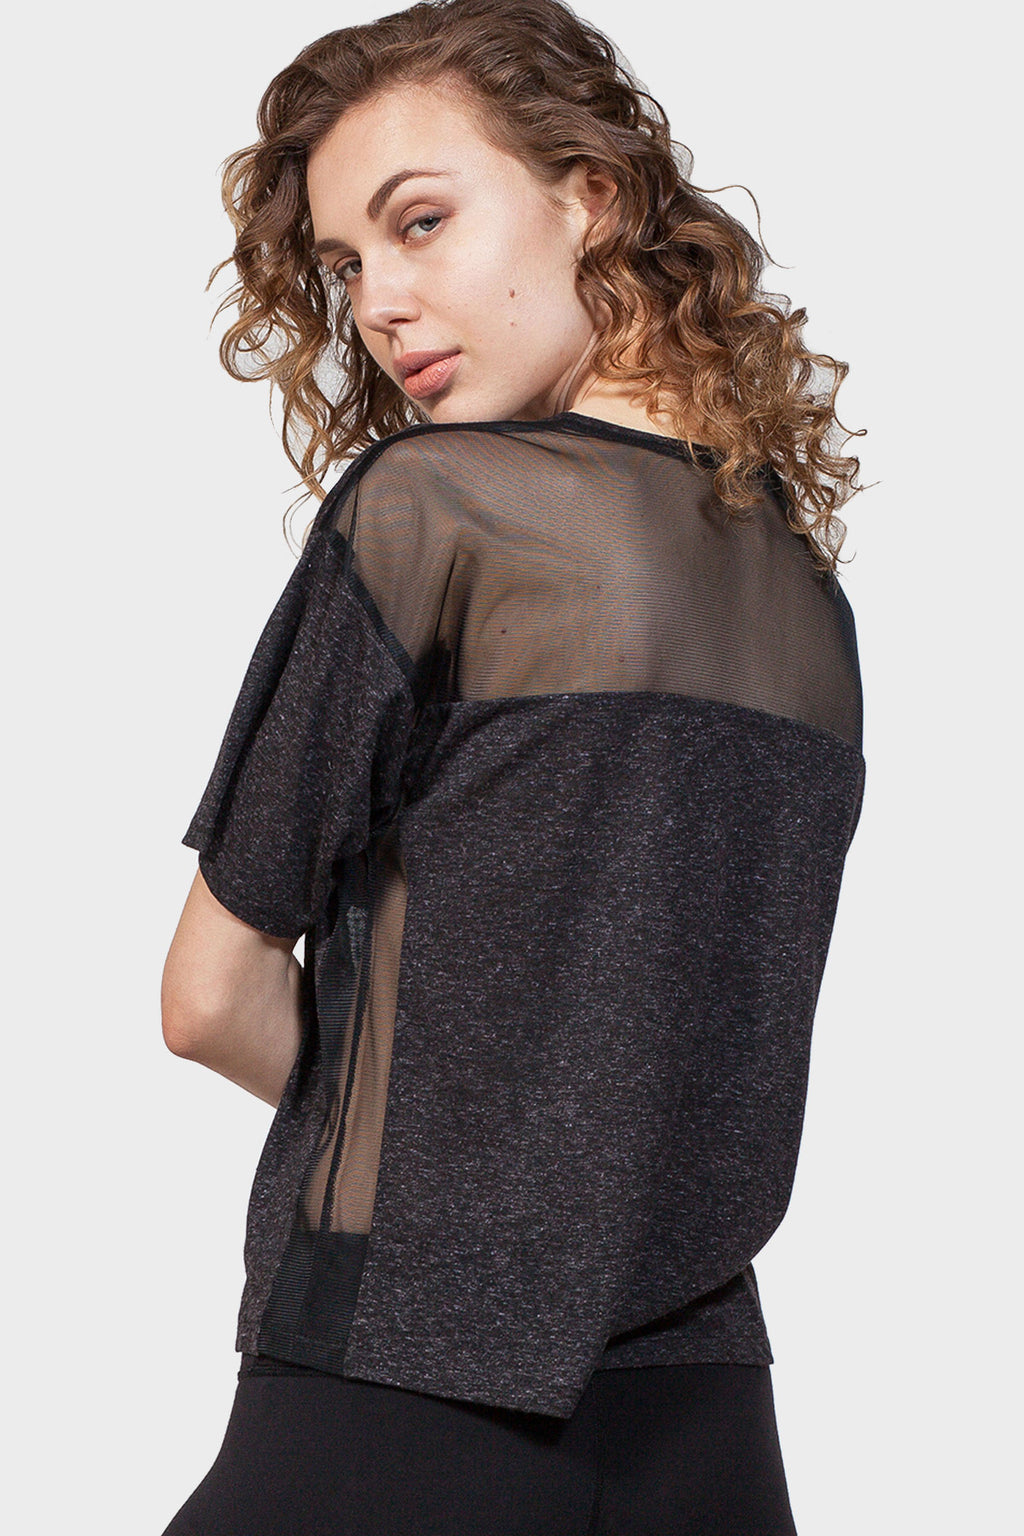 BACK MESH YOKE TOP - 337 BRAND Women's Sustainable Clothing